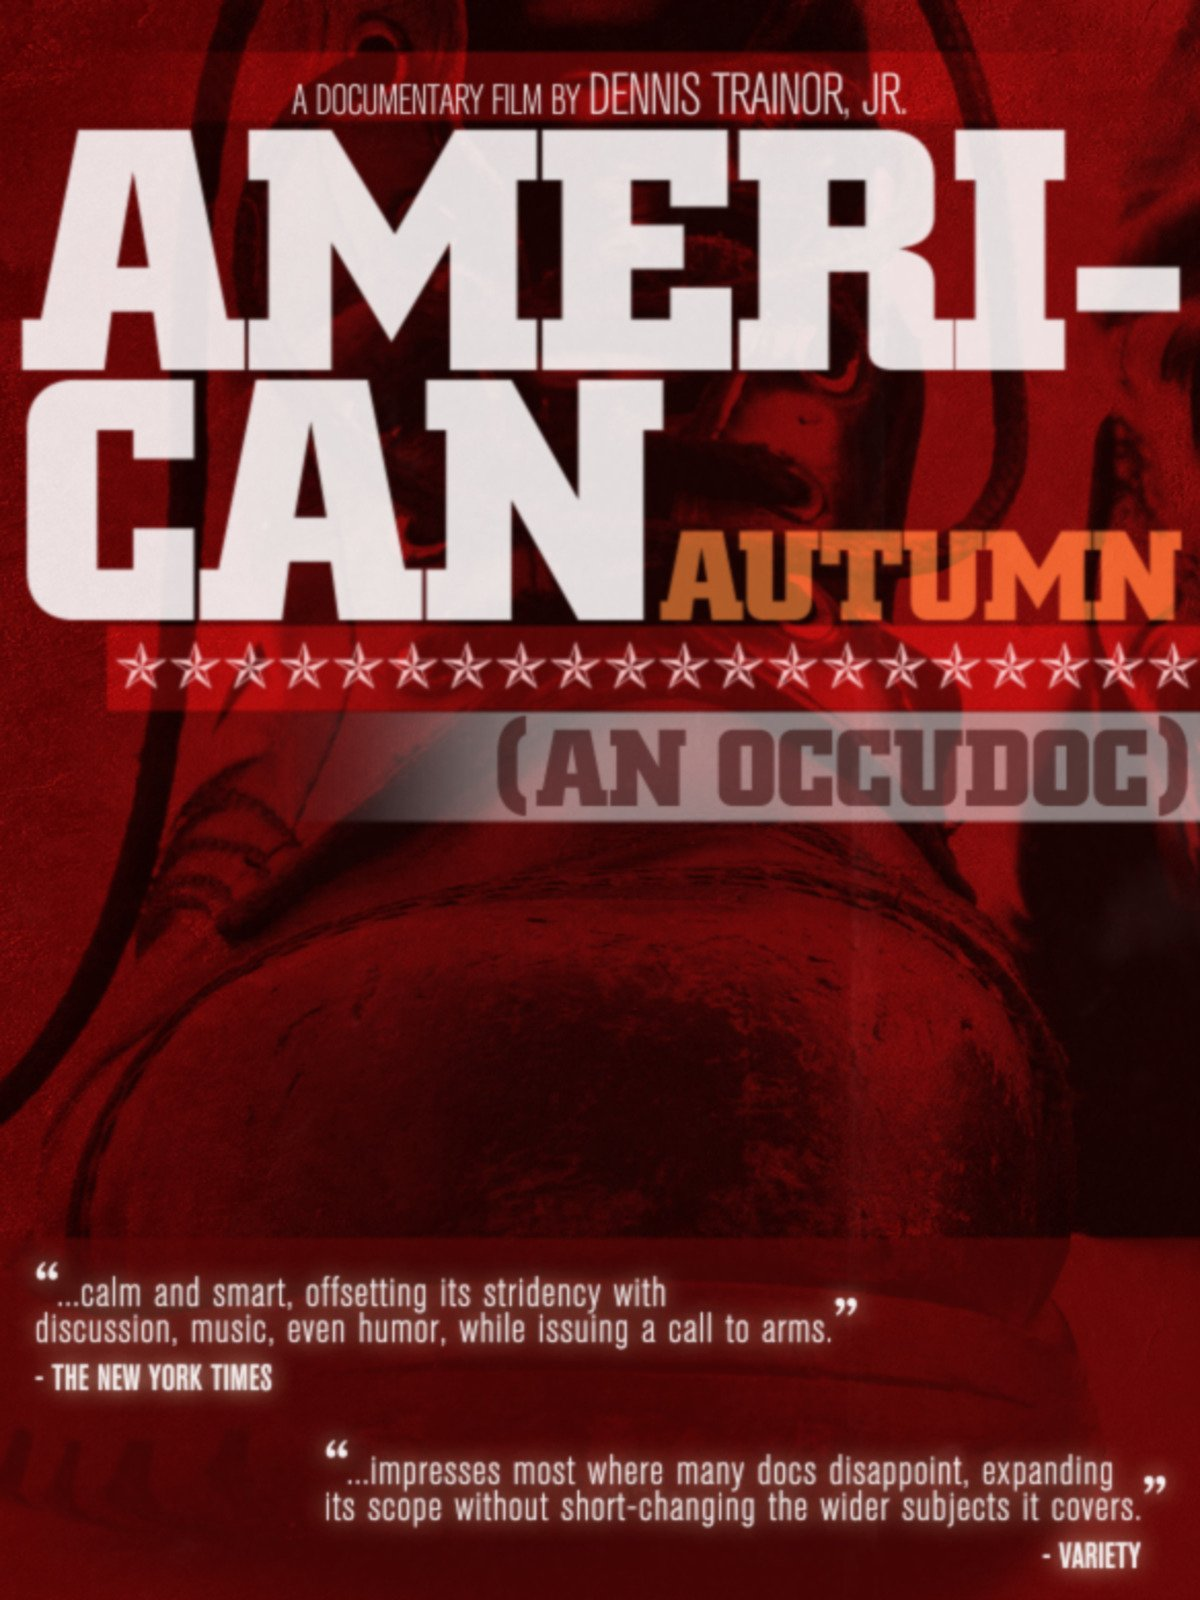 American Autumn an Occudoc